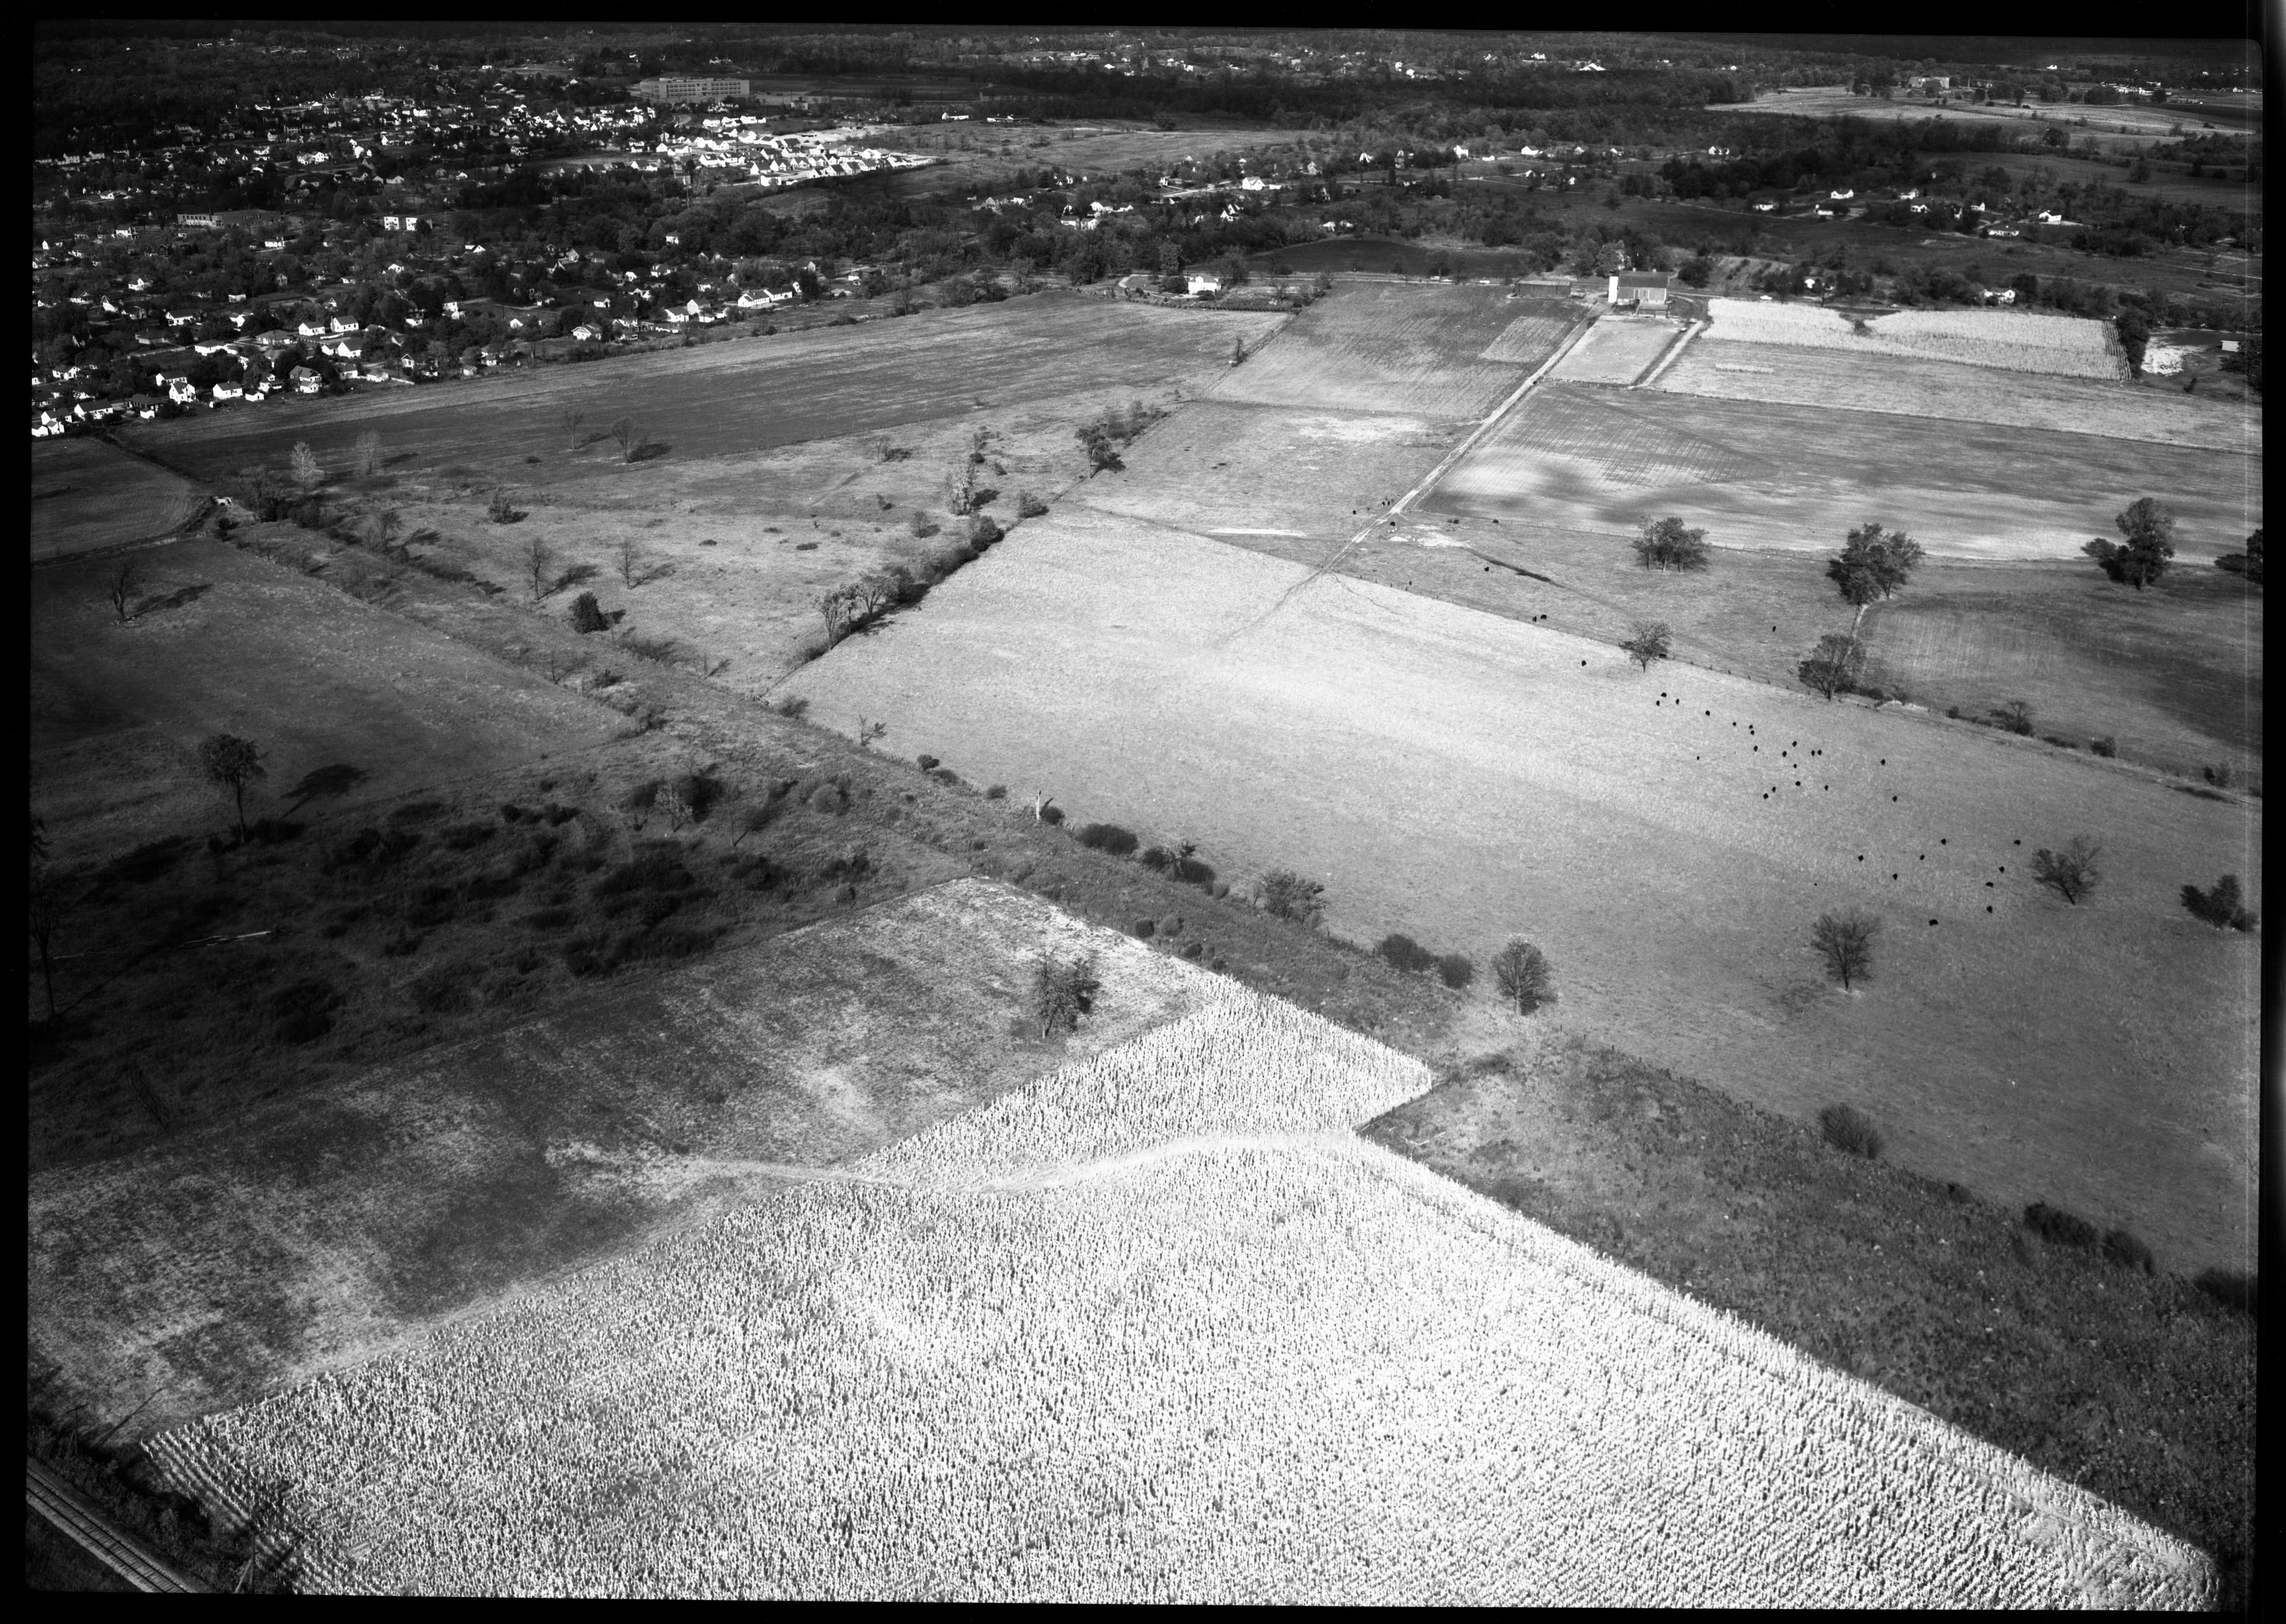 Aerial Photograph of Property North of Malborough Dr. and Packard Rd., October 1951 image